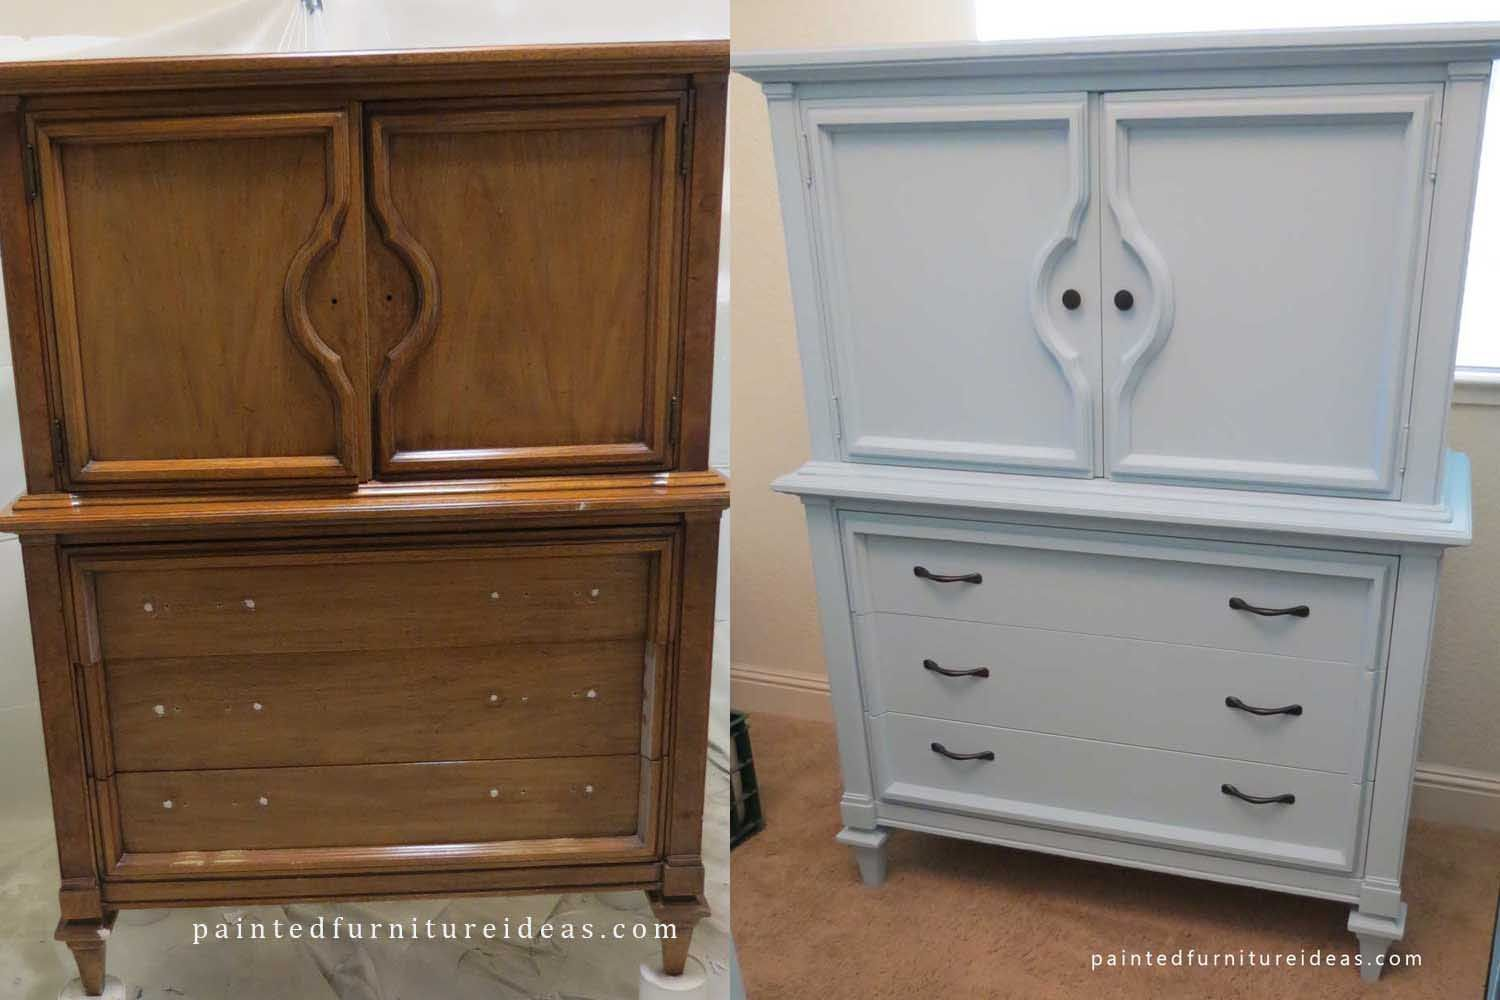 60 S Armoire Before And After Painted Furniture Ideas Refinishing Repurposed Repainting